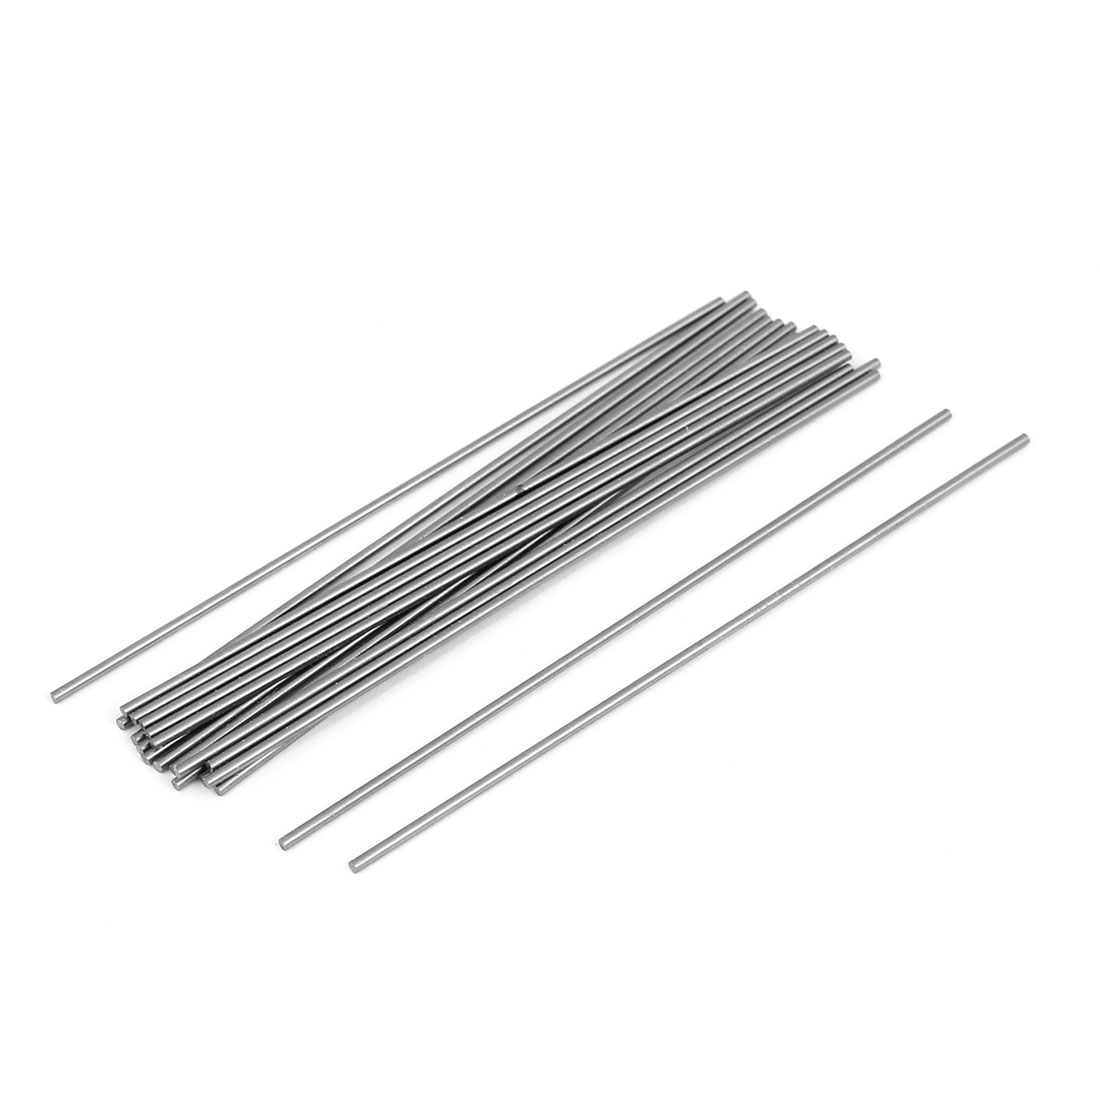 20 Pcs Silver Tone Steel Rod Round Stock Lathe Tools 1.4mm Diameter 100mm Long